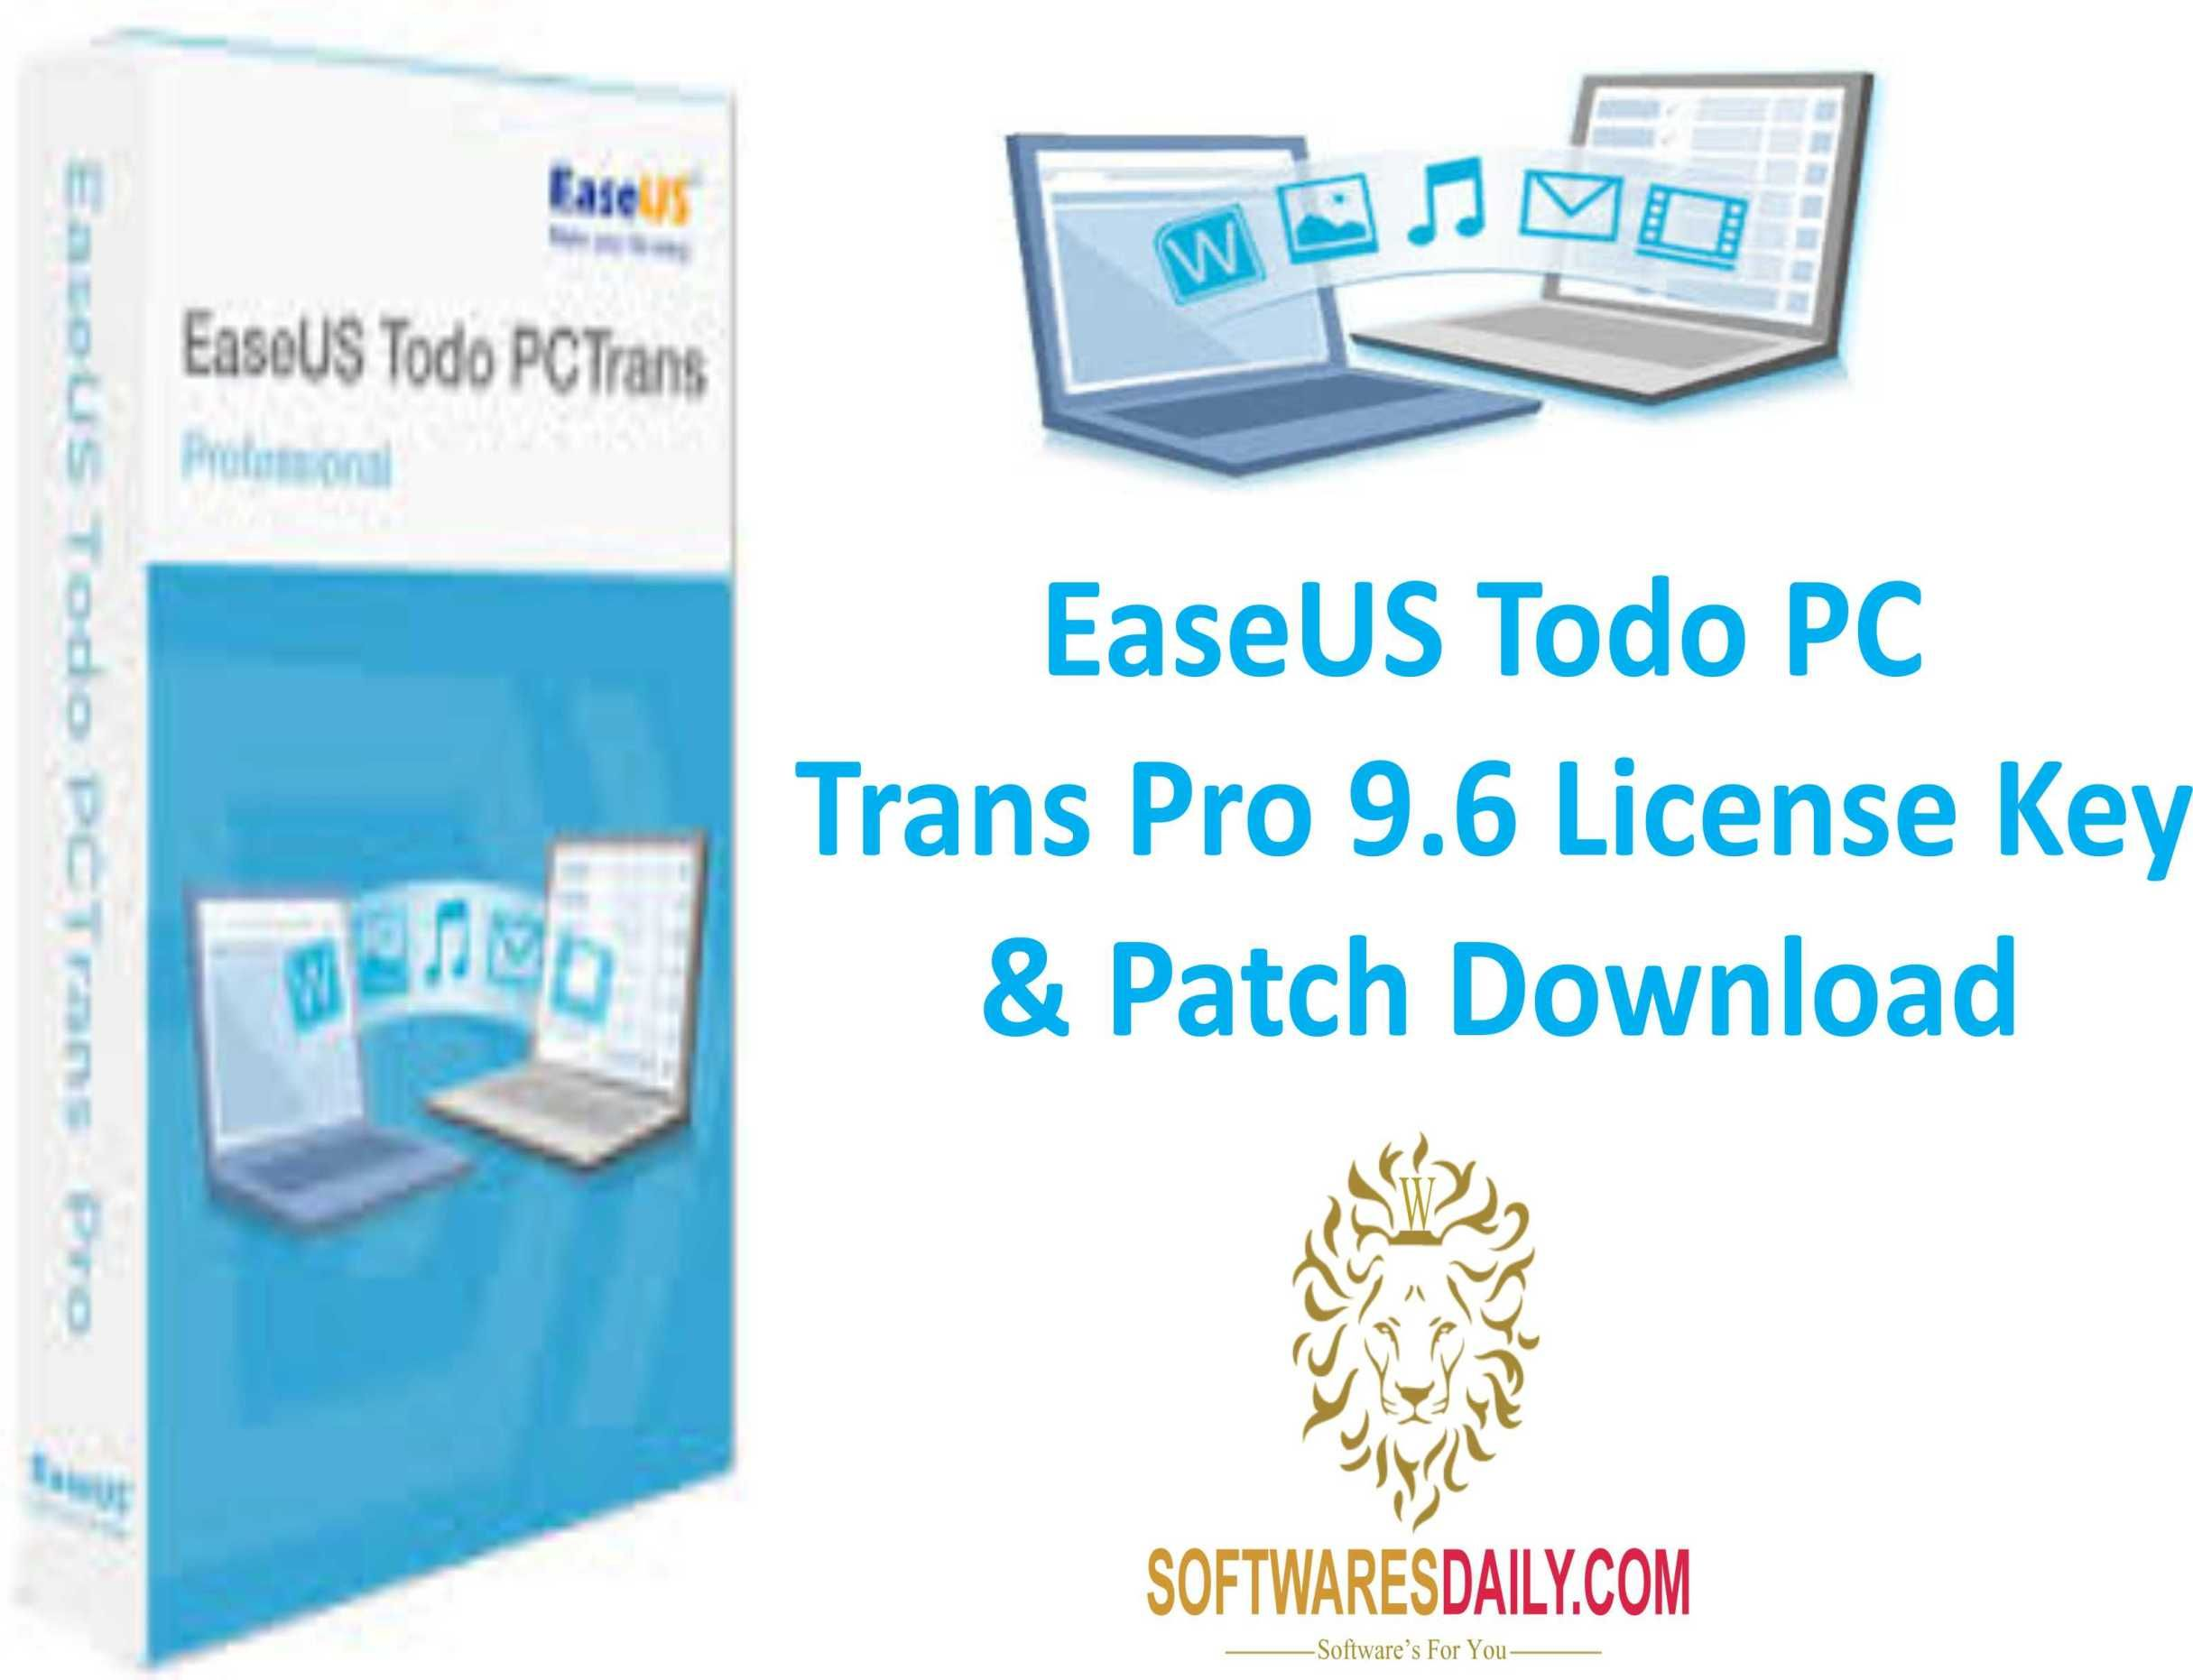 EaseUS Todo PCTrans Pro 9 6 License Key & Patch Download